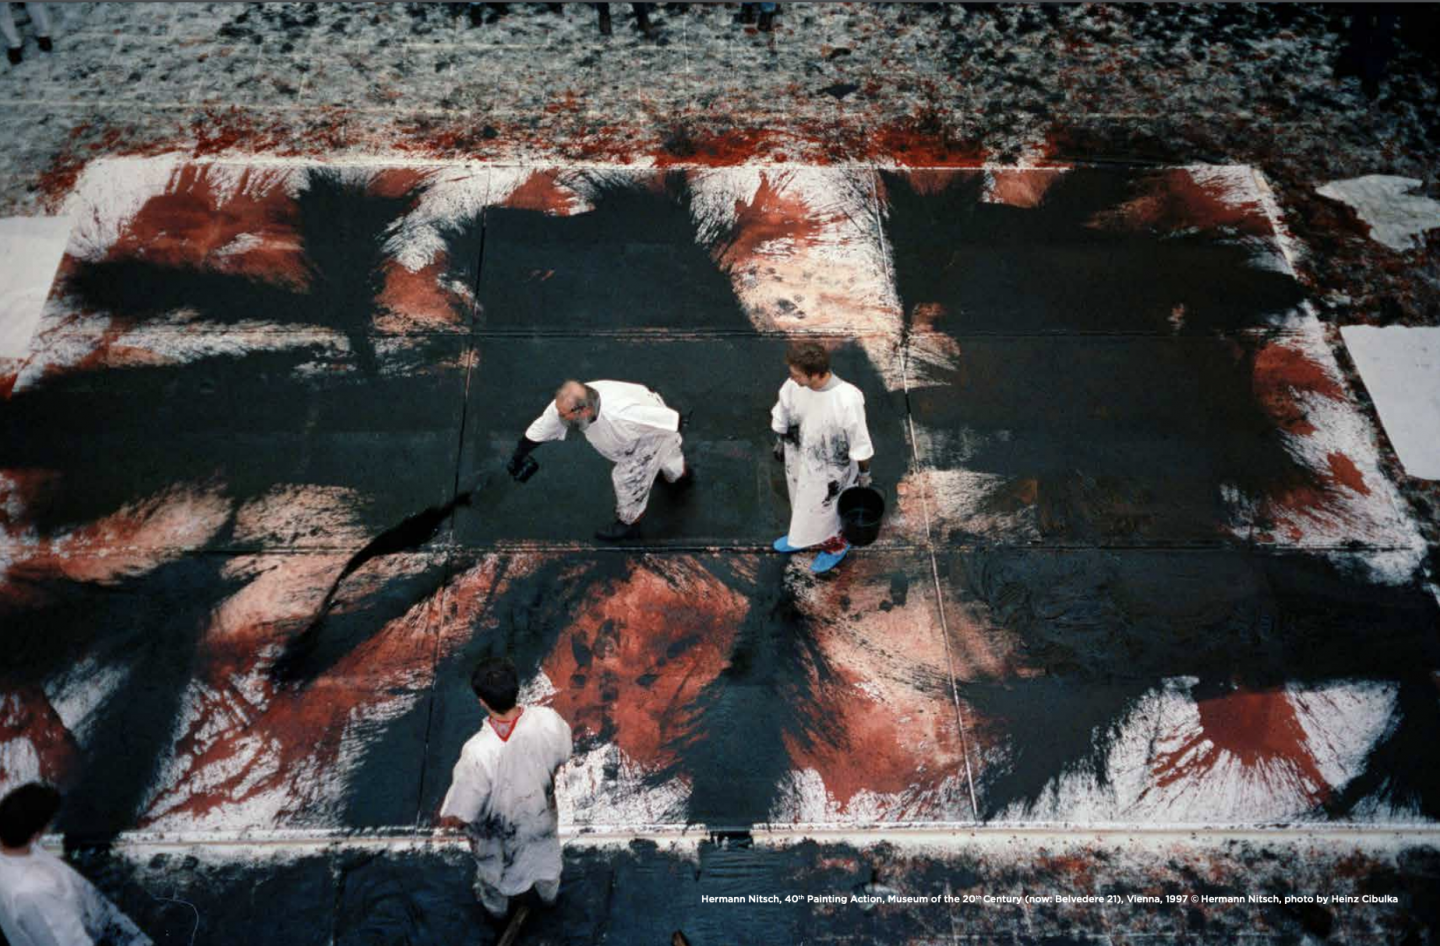 Photo : Hermann Nitsch, 40th Painting Action, Museum of the 20th Century (now: Belvedere 21), Vienna, 1997 © Hermann Nitsch, photo by Heinz Cibulka.